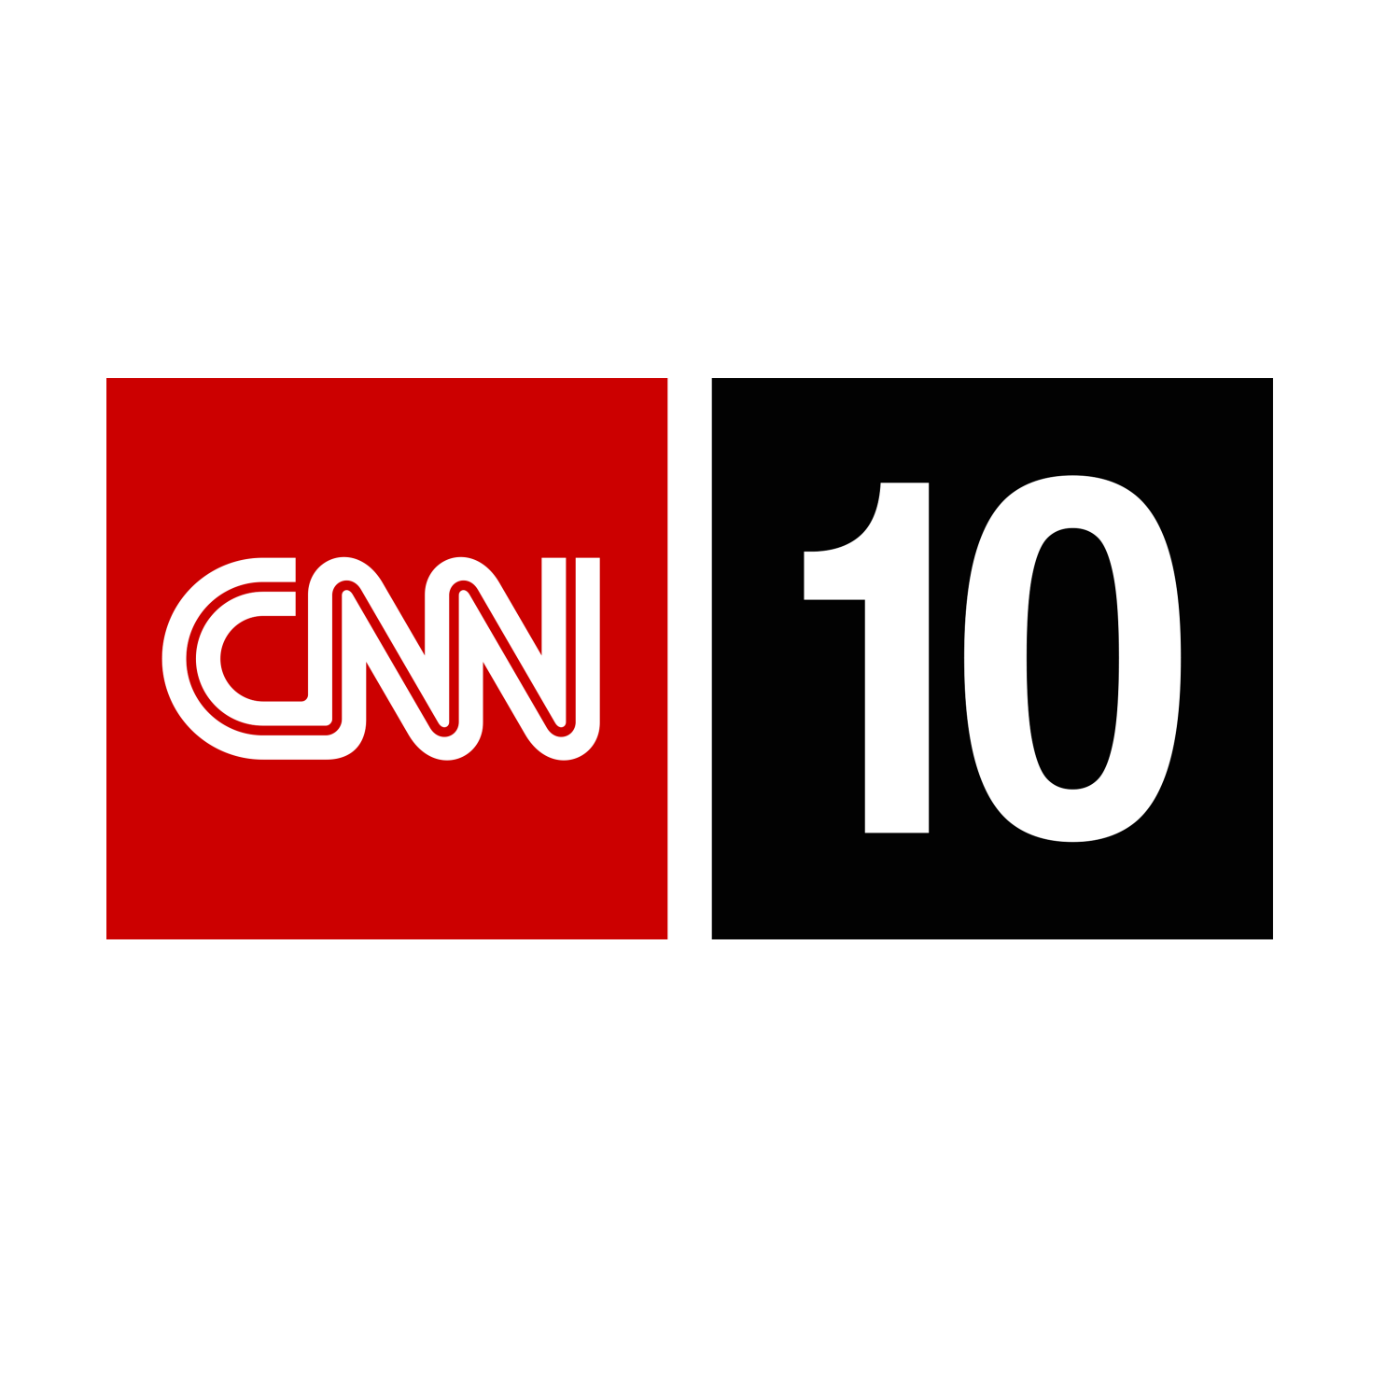 CNN Student News - May 23, 2013